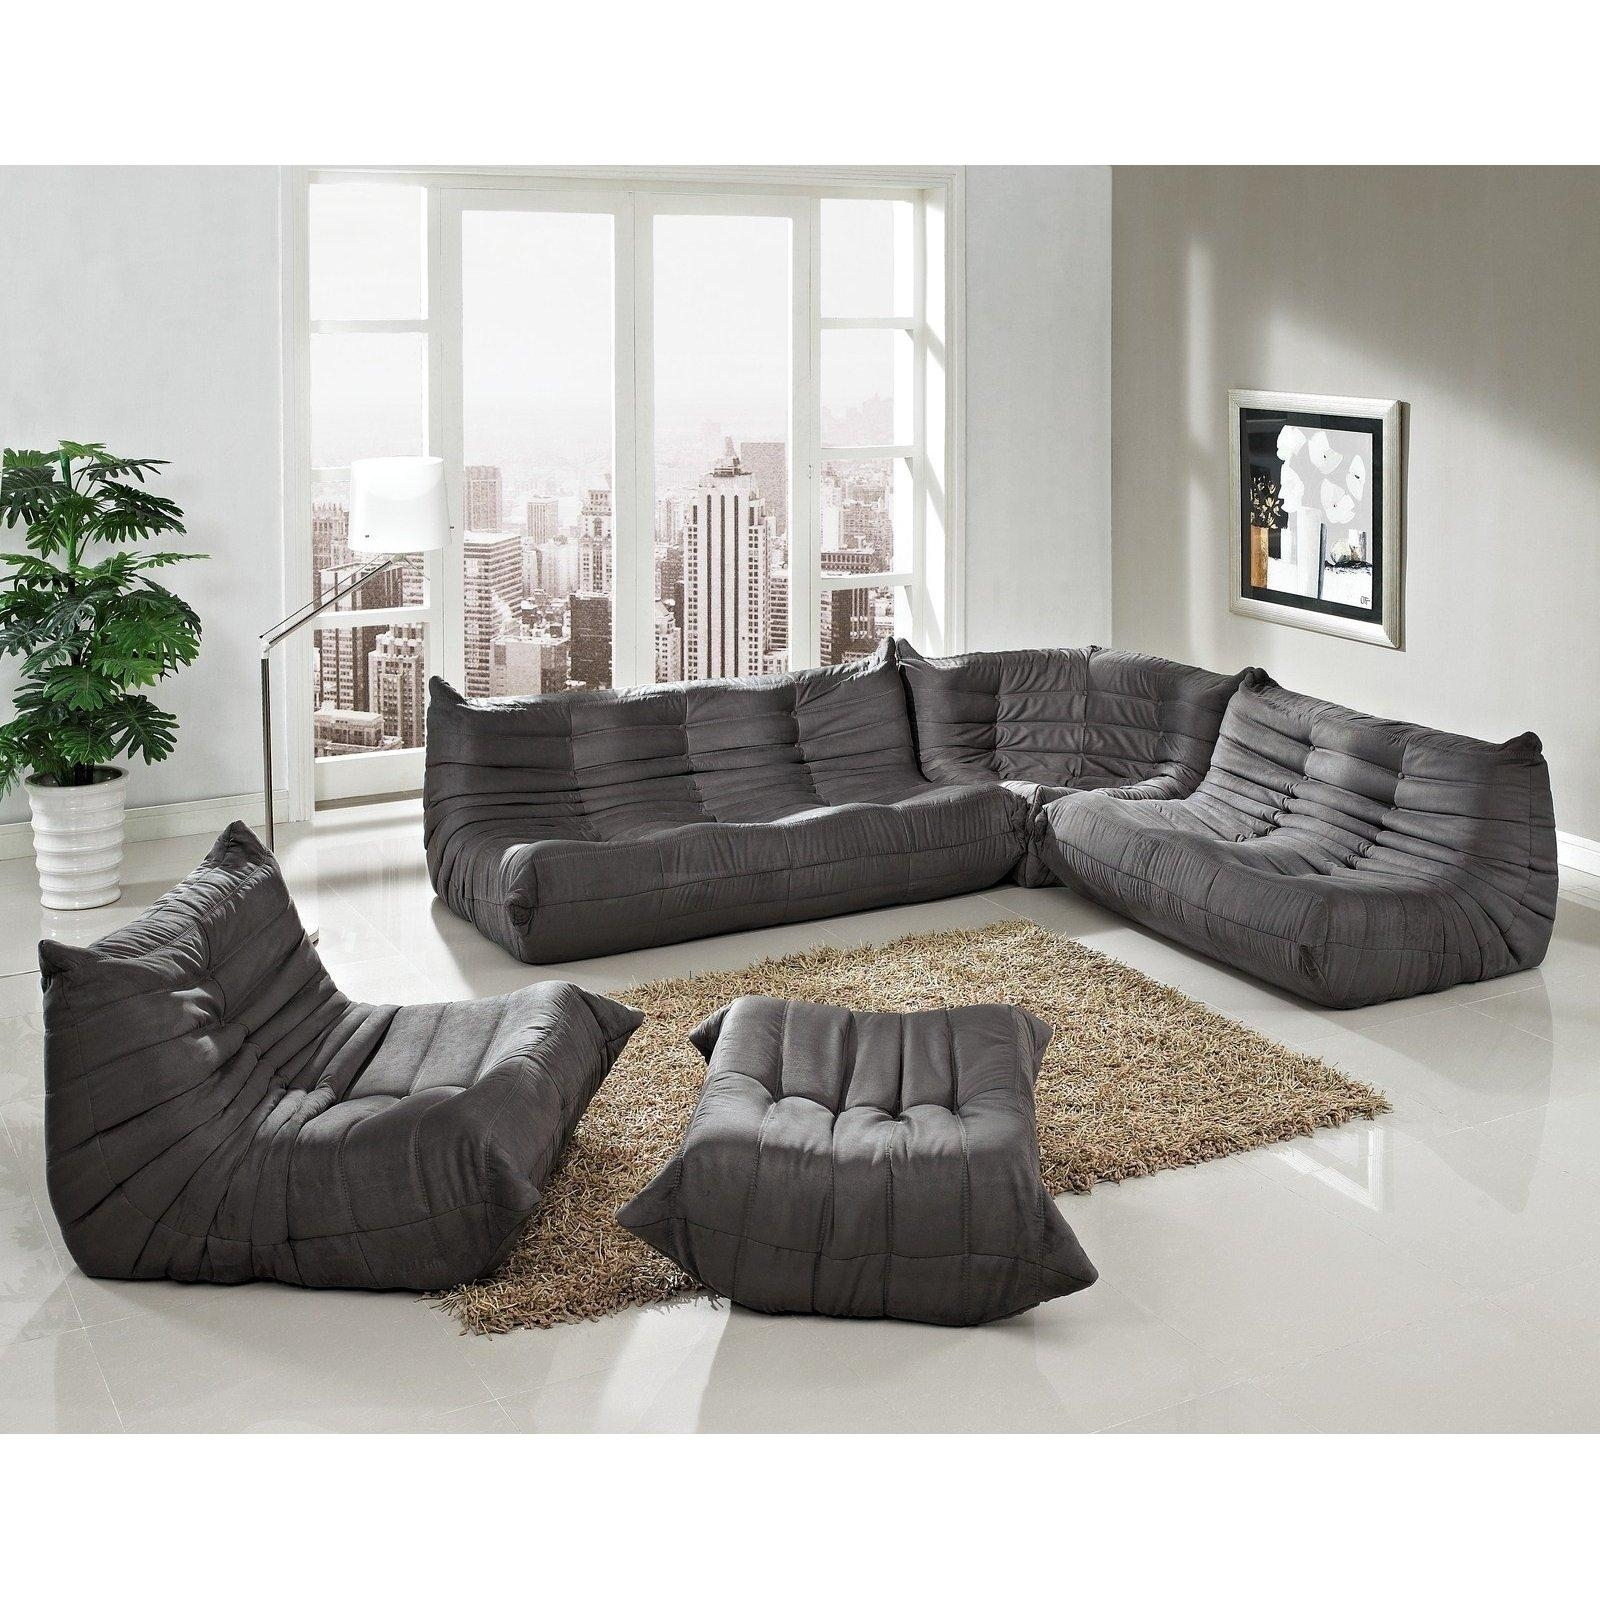 Living Room : Furniture Living Room Modern Sectional Sofas And Throughout Leather Modular Sectional Sofas (View 4 of 20)